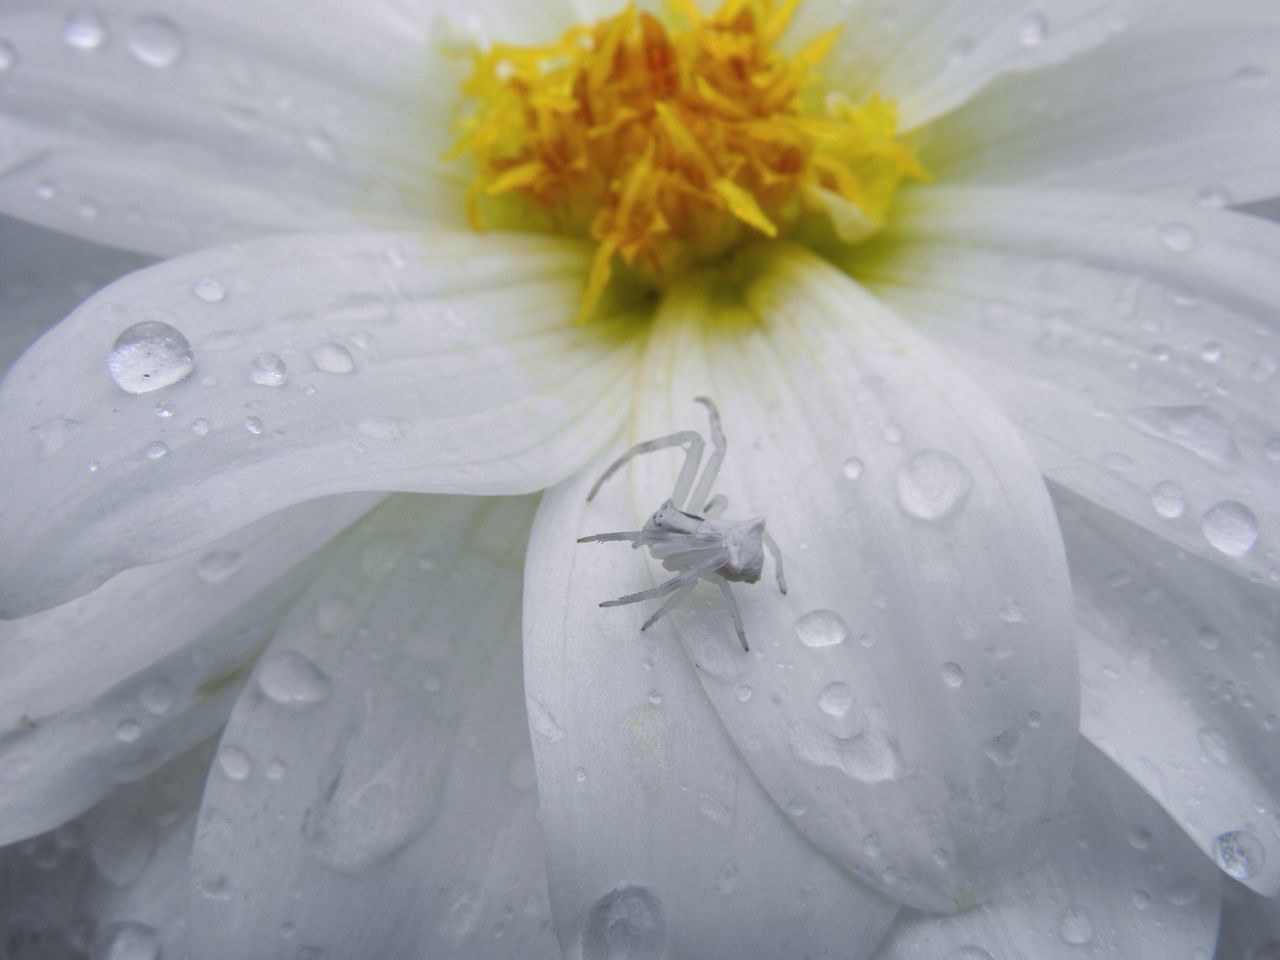 Crab Spider Macro Spider Mimetism Total White White Day Purity Plant Close-up Outdoors No People Backgrounds Drop Flower Head Wet Petal Water Freshness Nature Beauty In Nature Flower White Background Dew